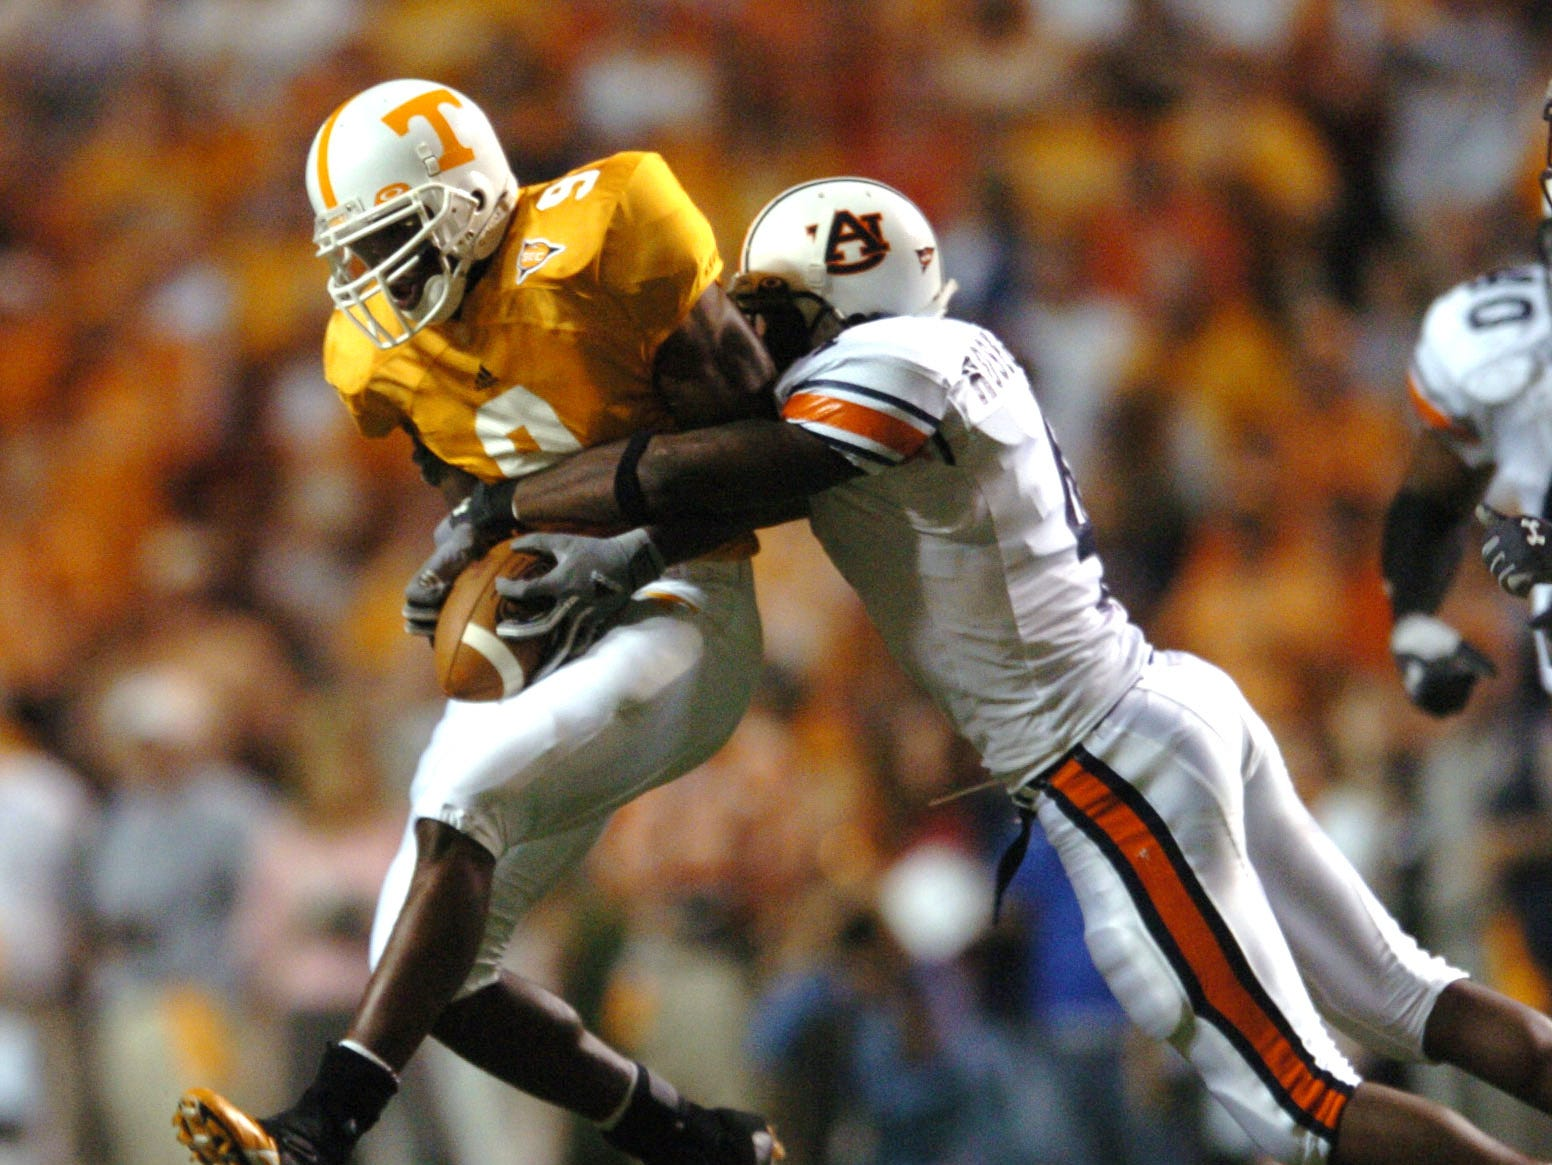 UT's  Bret Smith (9) tries to get away from an Auburn defender in 2004.